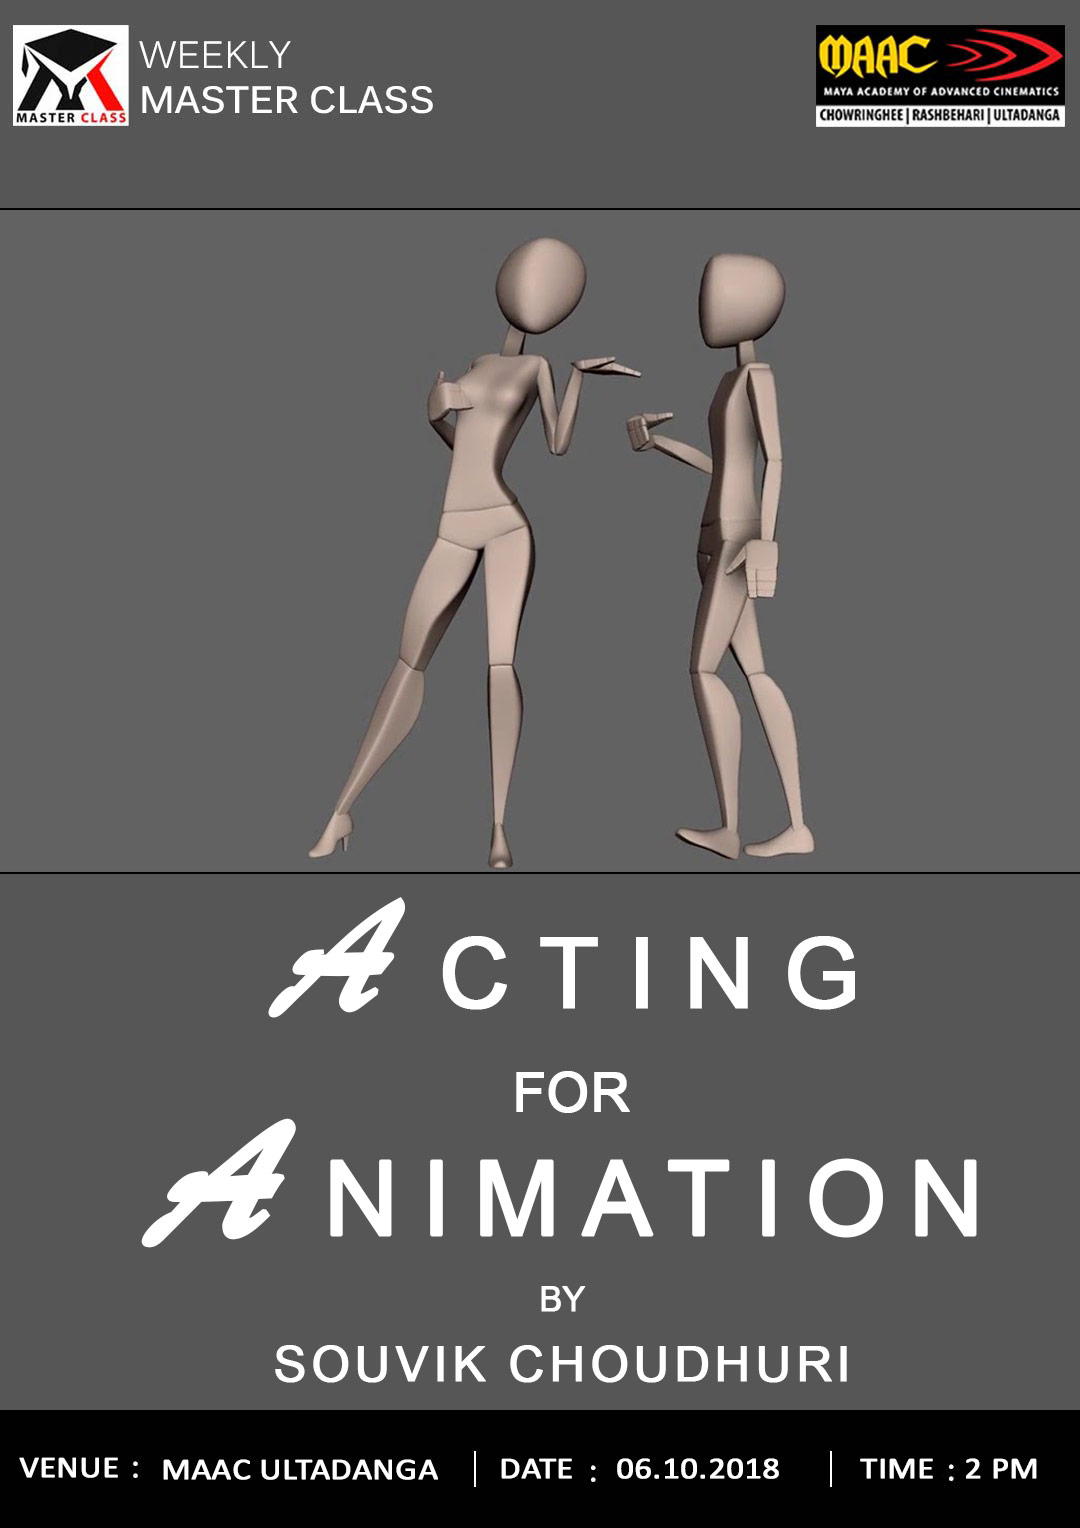 Weekly Master Class on Acting for Animation